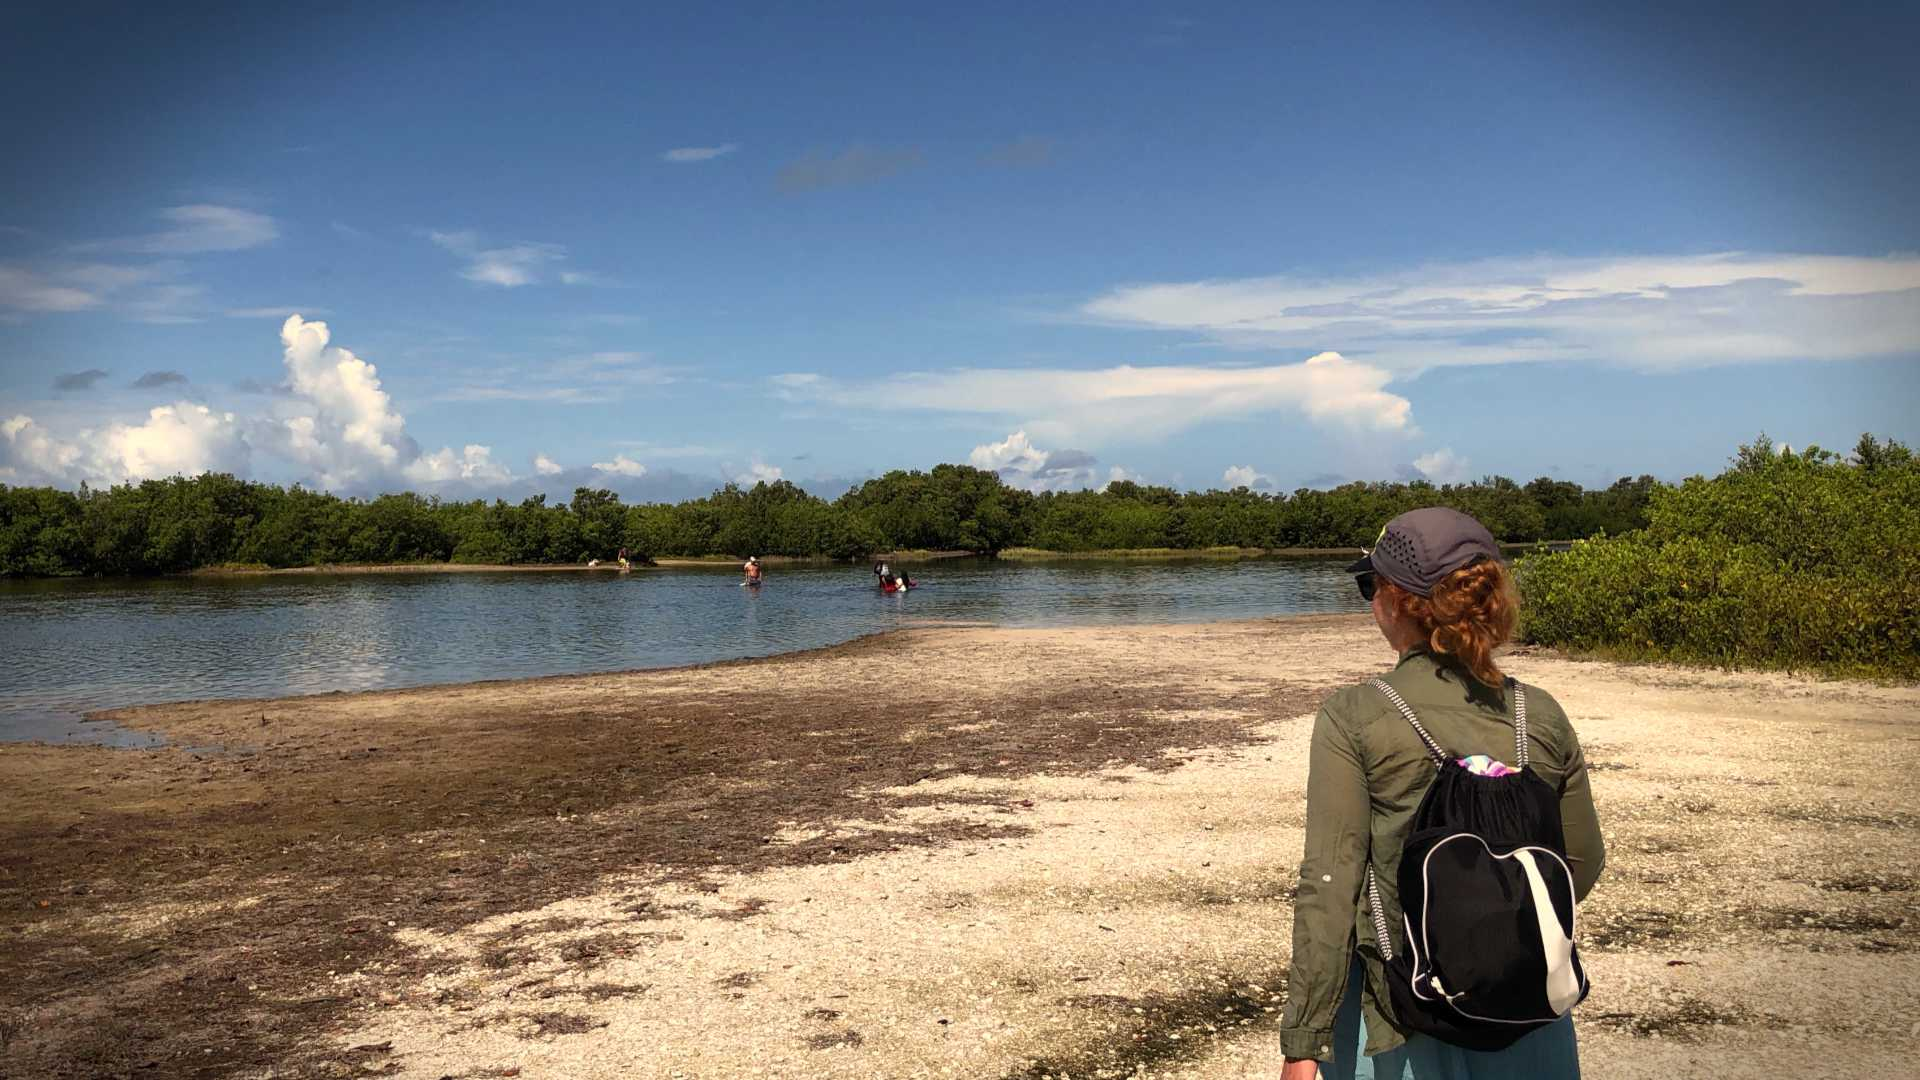 Tigertail Beach's lagoon, separating the wilder beach from the more accessible parts. Another family was coming back across toward us.